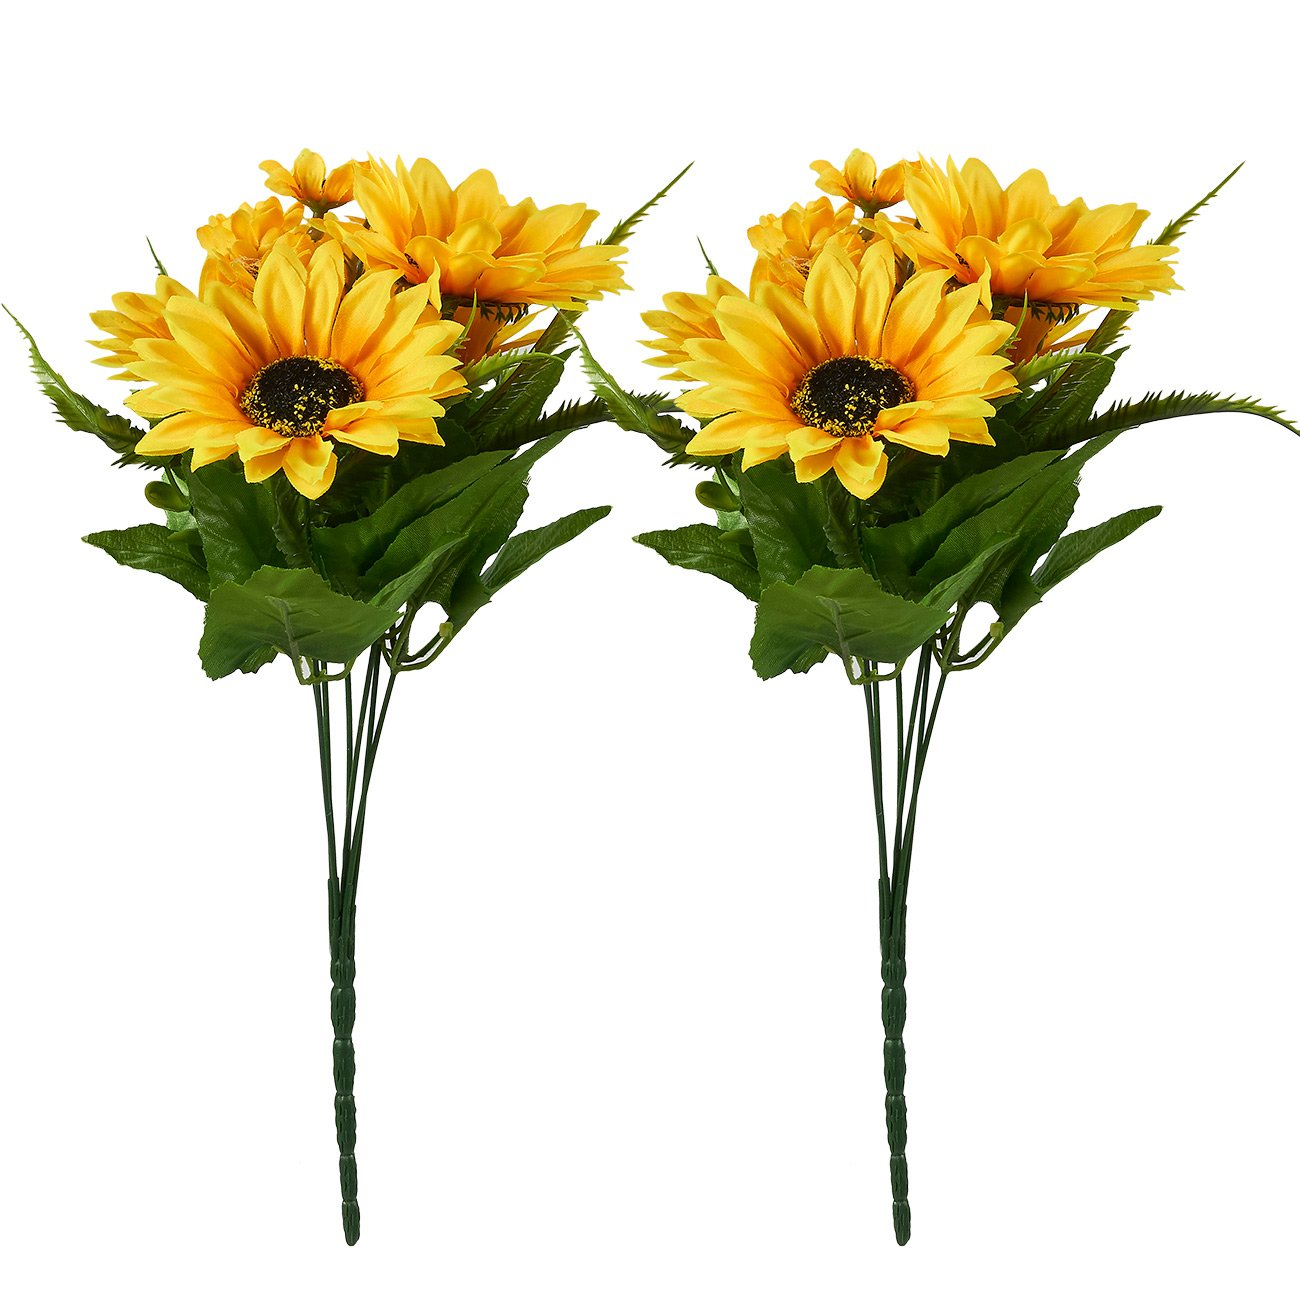 Juvale-Artificial-Sunflowers-2-Bunches-Sunflower-Bouquet-in-Yellow-Fake-Flowers-Artificial-Plant-for-Home-Decor-Wedding-Party-Patio